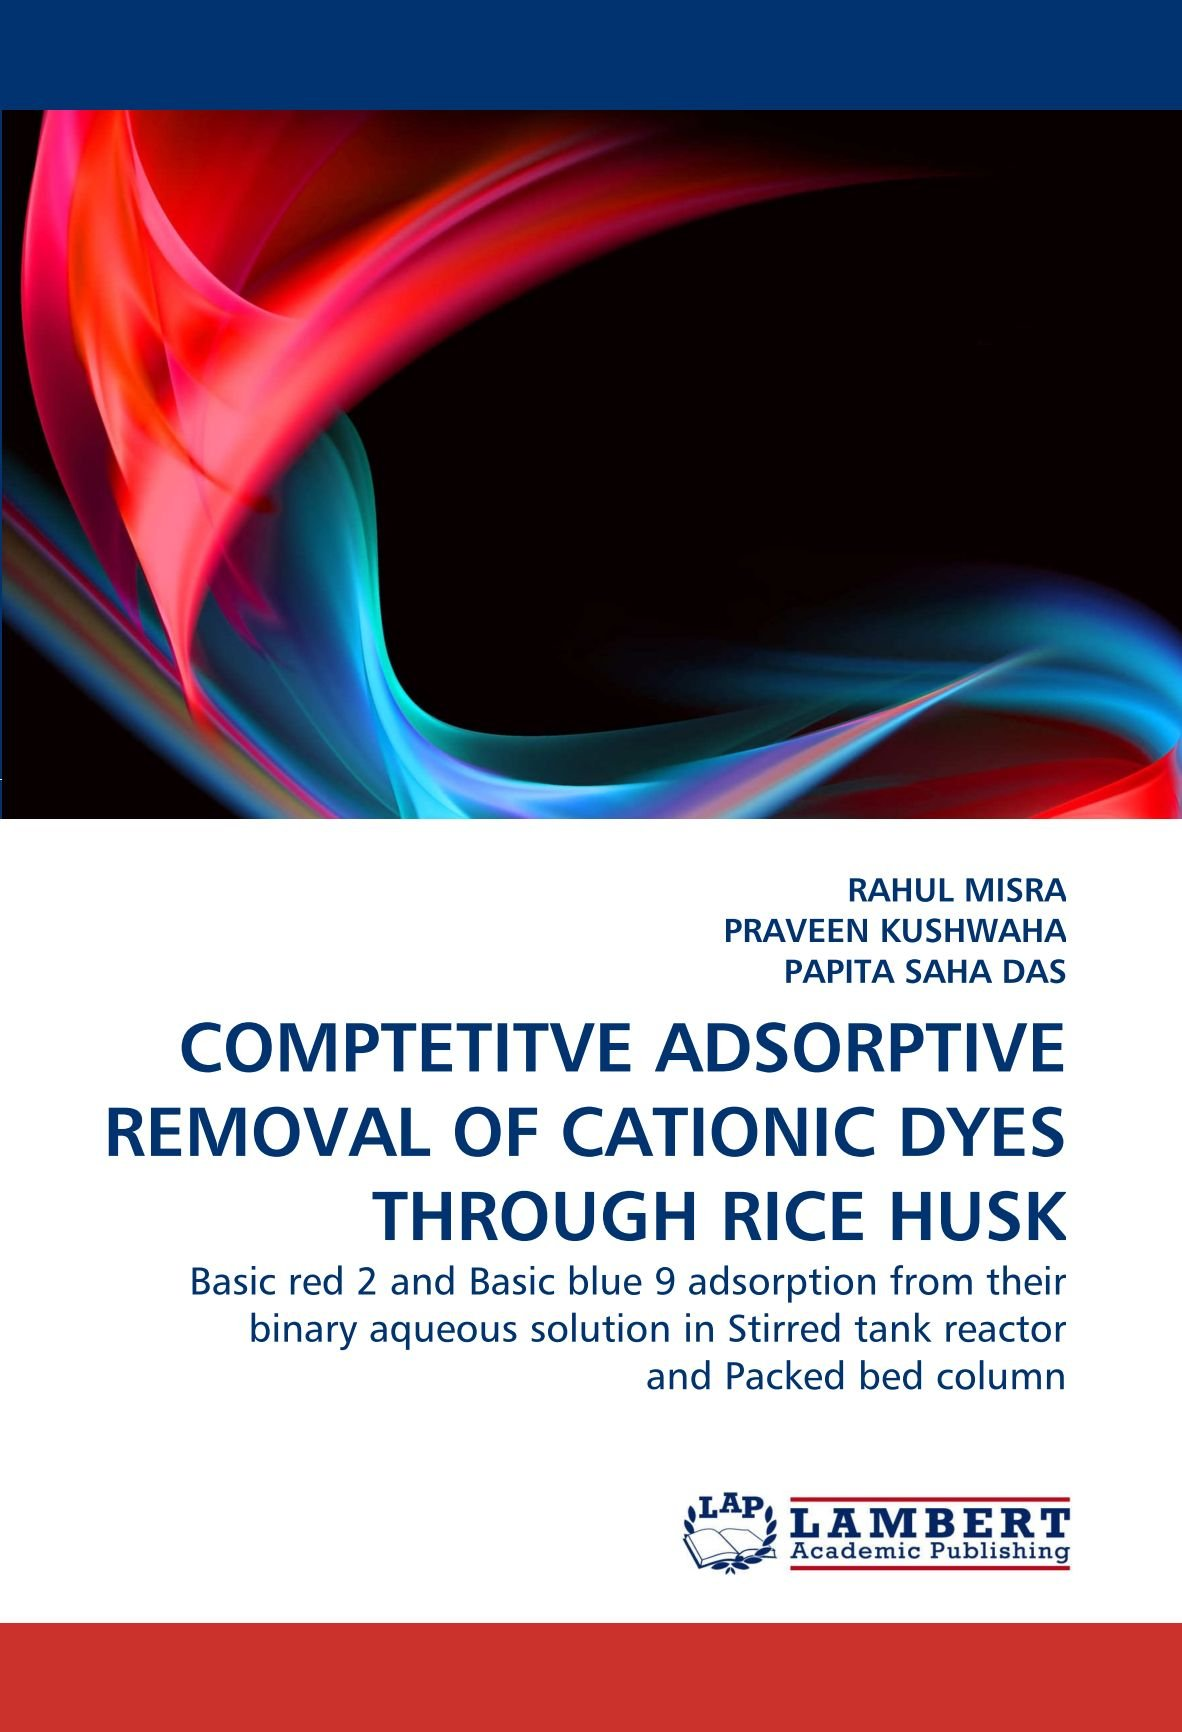 COMPTETITVE ADSORPTIVE REMOVAL OF CATIONIC DYES THROUGH RICE HUSK: Basic red 2 and Basic blue 9 adsorption from their binary aqueous solution in Stirred tank reactor and Packed bed column pdf